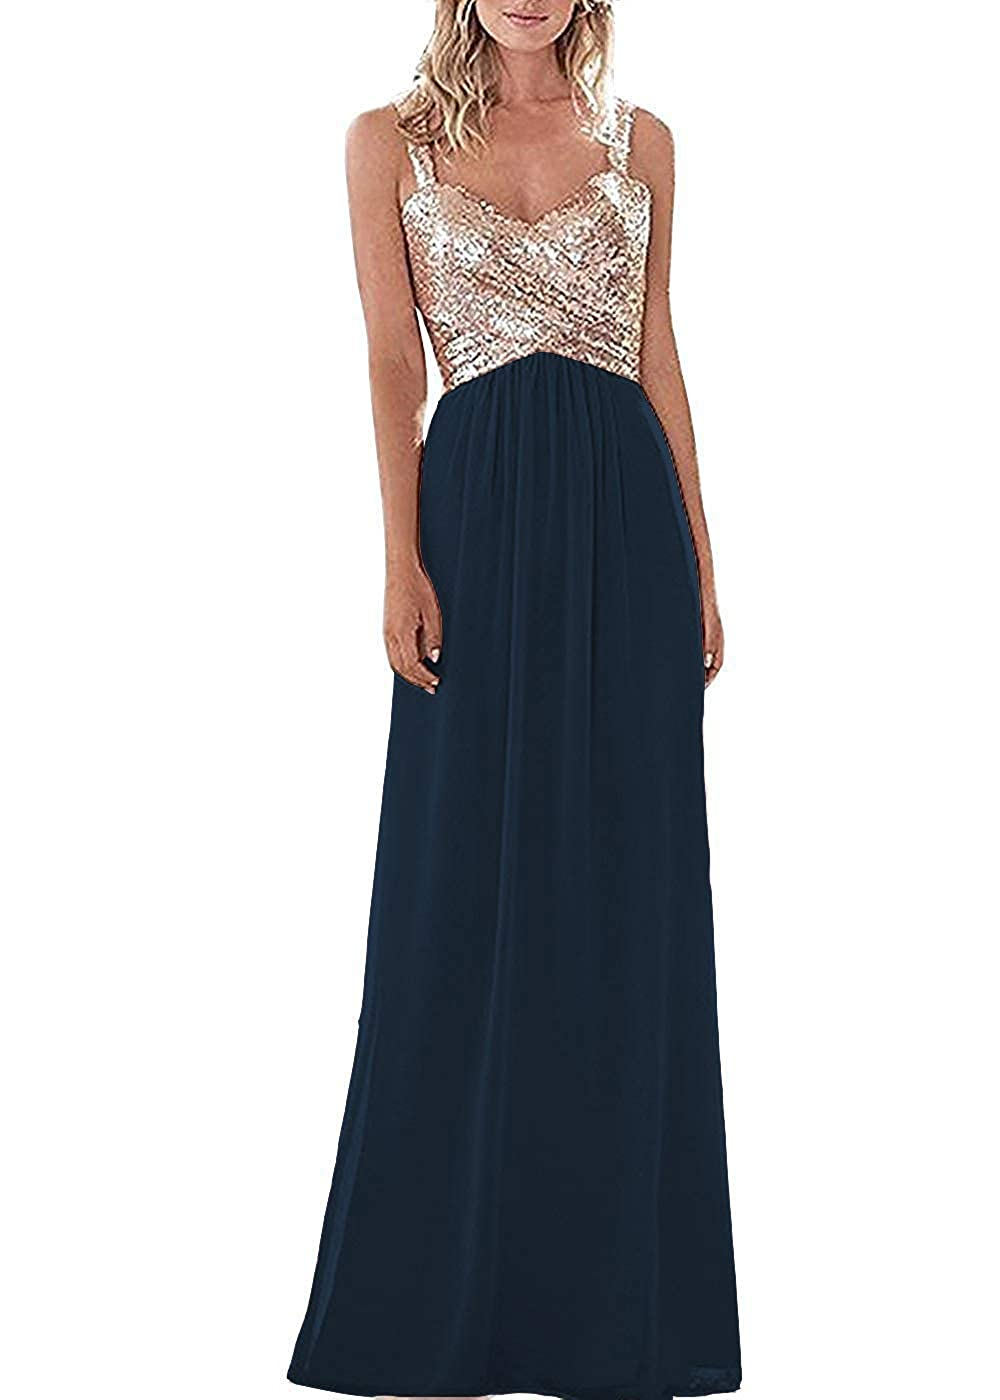 Navy bluee C LL Bridal Top Sequins pink gold Bridesmaid Dress Long Prom Party Dresses Evening